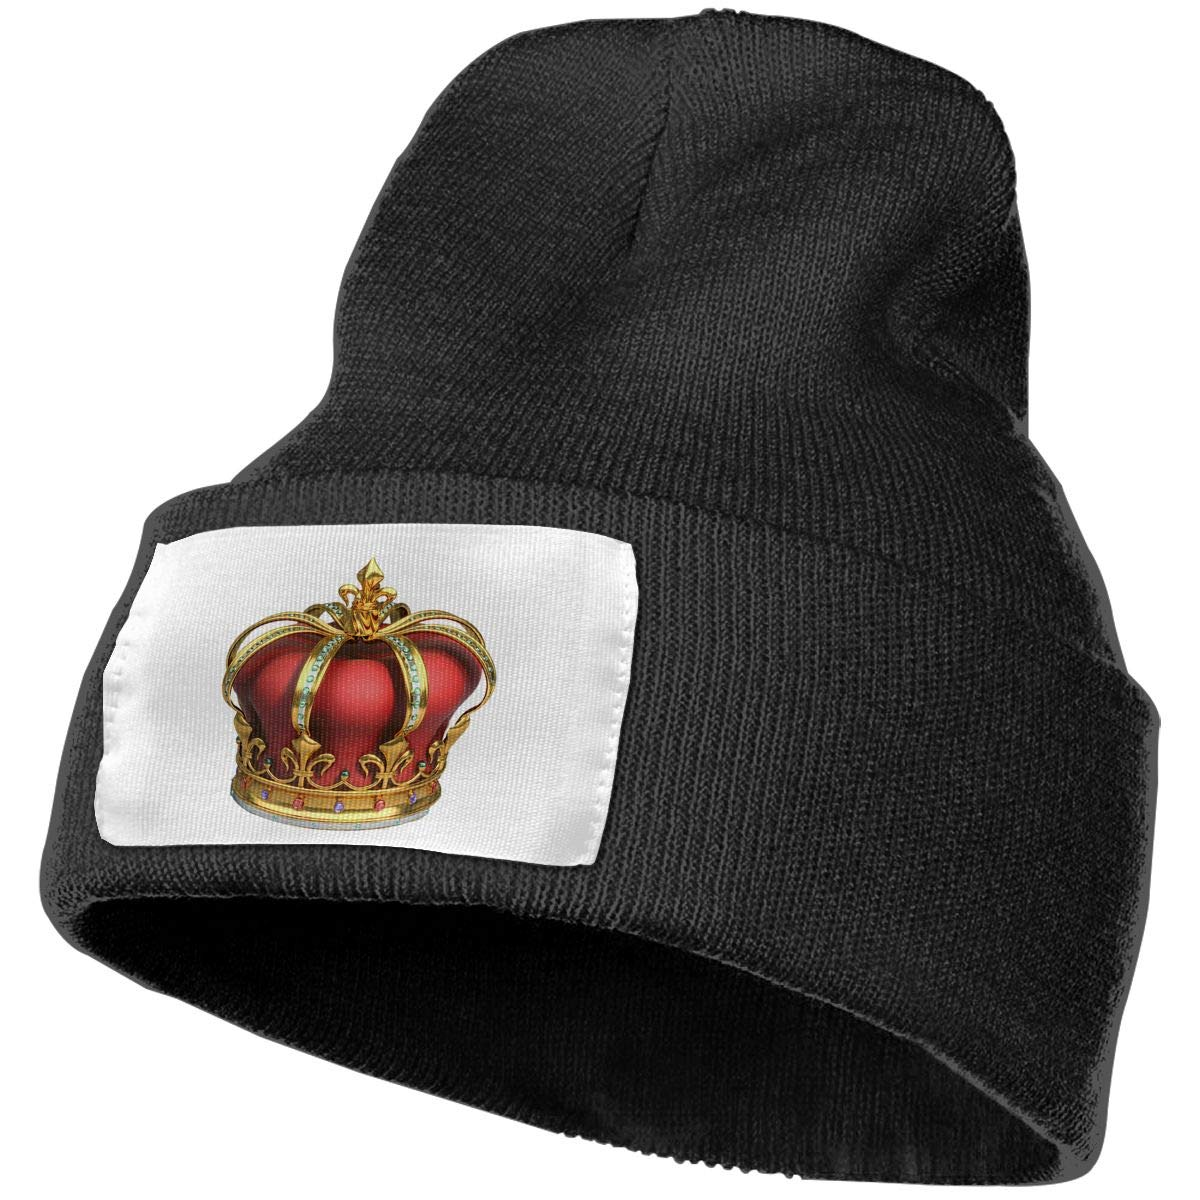 085a5212952 Amazon.com  Beanie Hat Knit Hat Cap Gold and Red Crown with Diamonds Unisex  Cuffed Plain Skull Knit Hat Cap Head Cap Black  Clothing